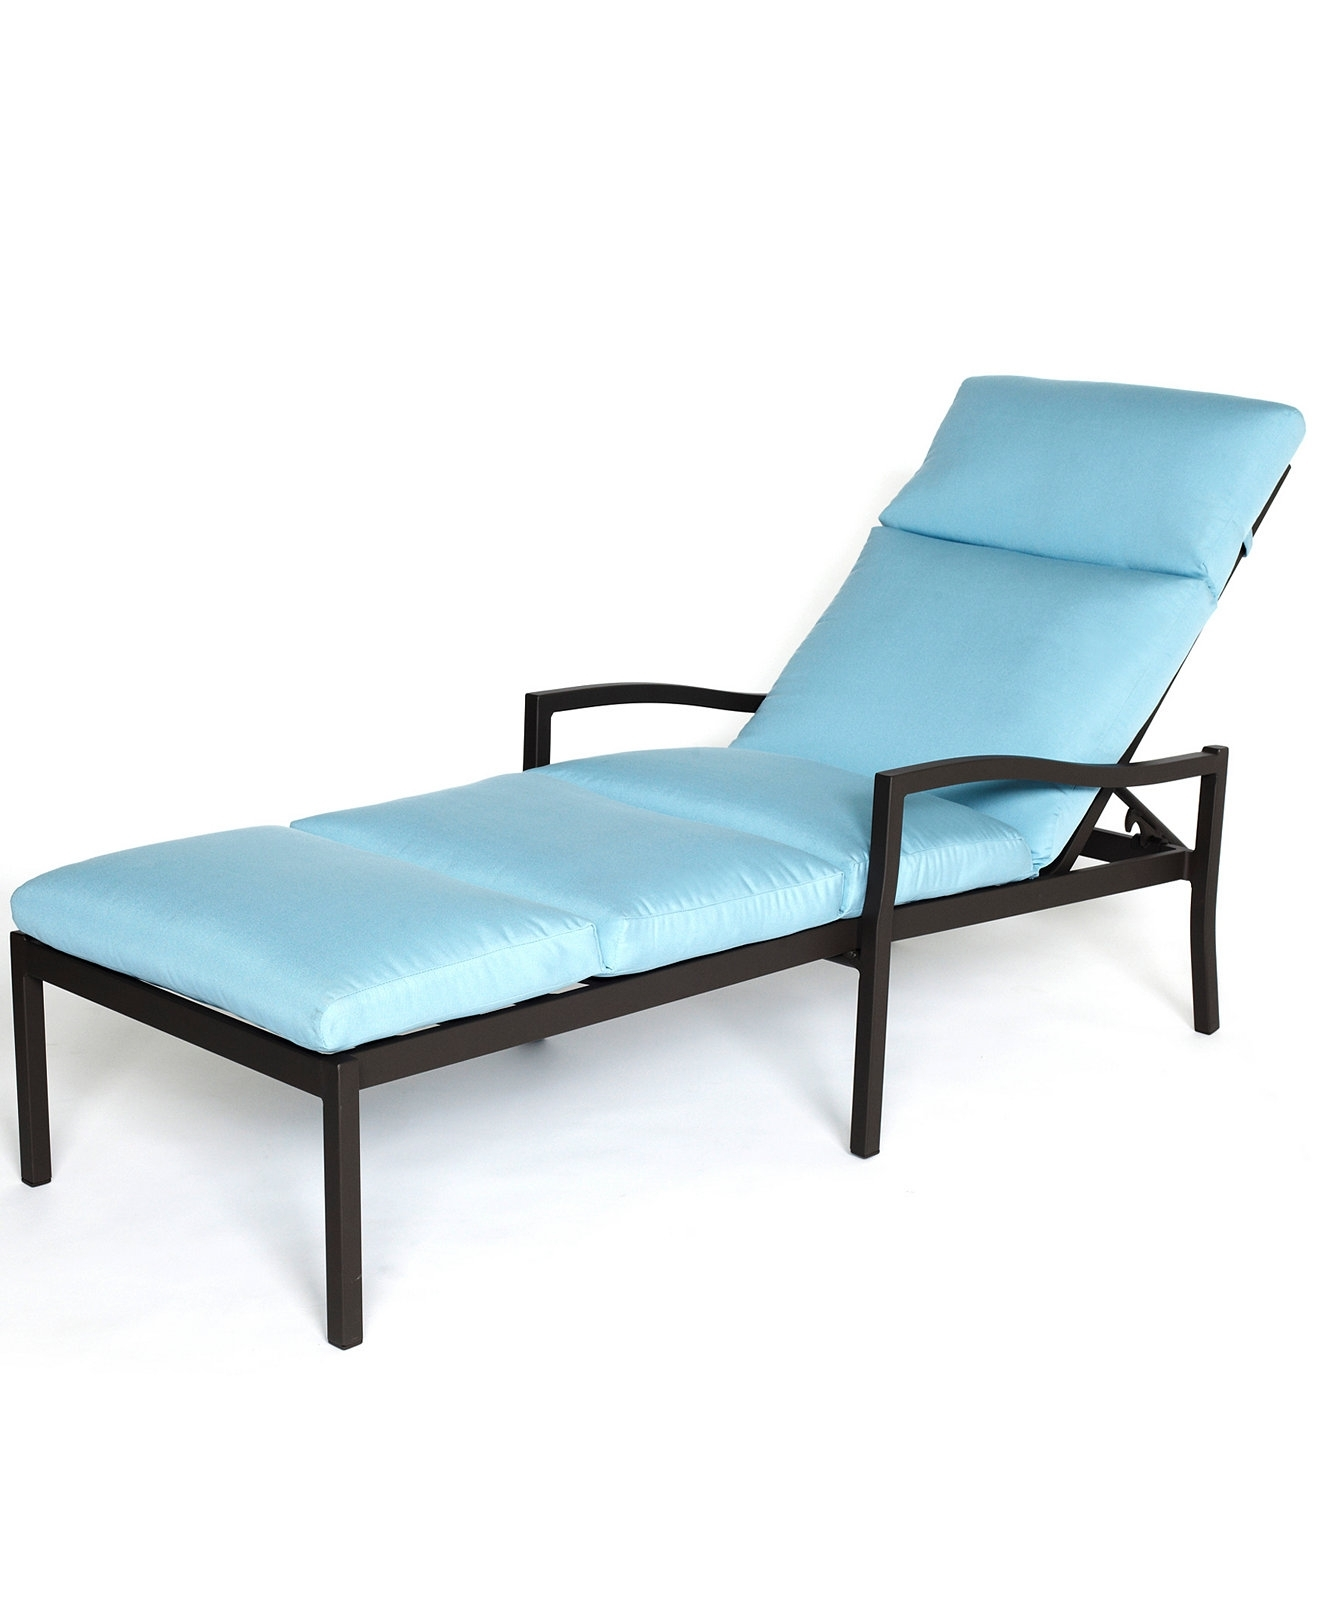 2018 Macys Outdoor Chaise Lounge Chairs Regarding Holden Aluminum Patio Furniture, Outdoor Chaise Lounge – Outdoor (View 1 of 15)